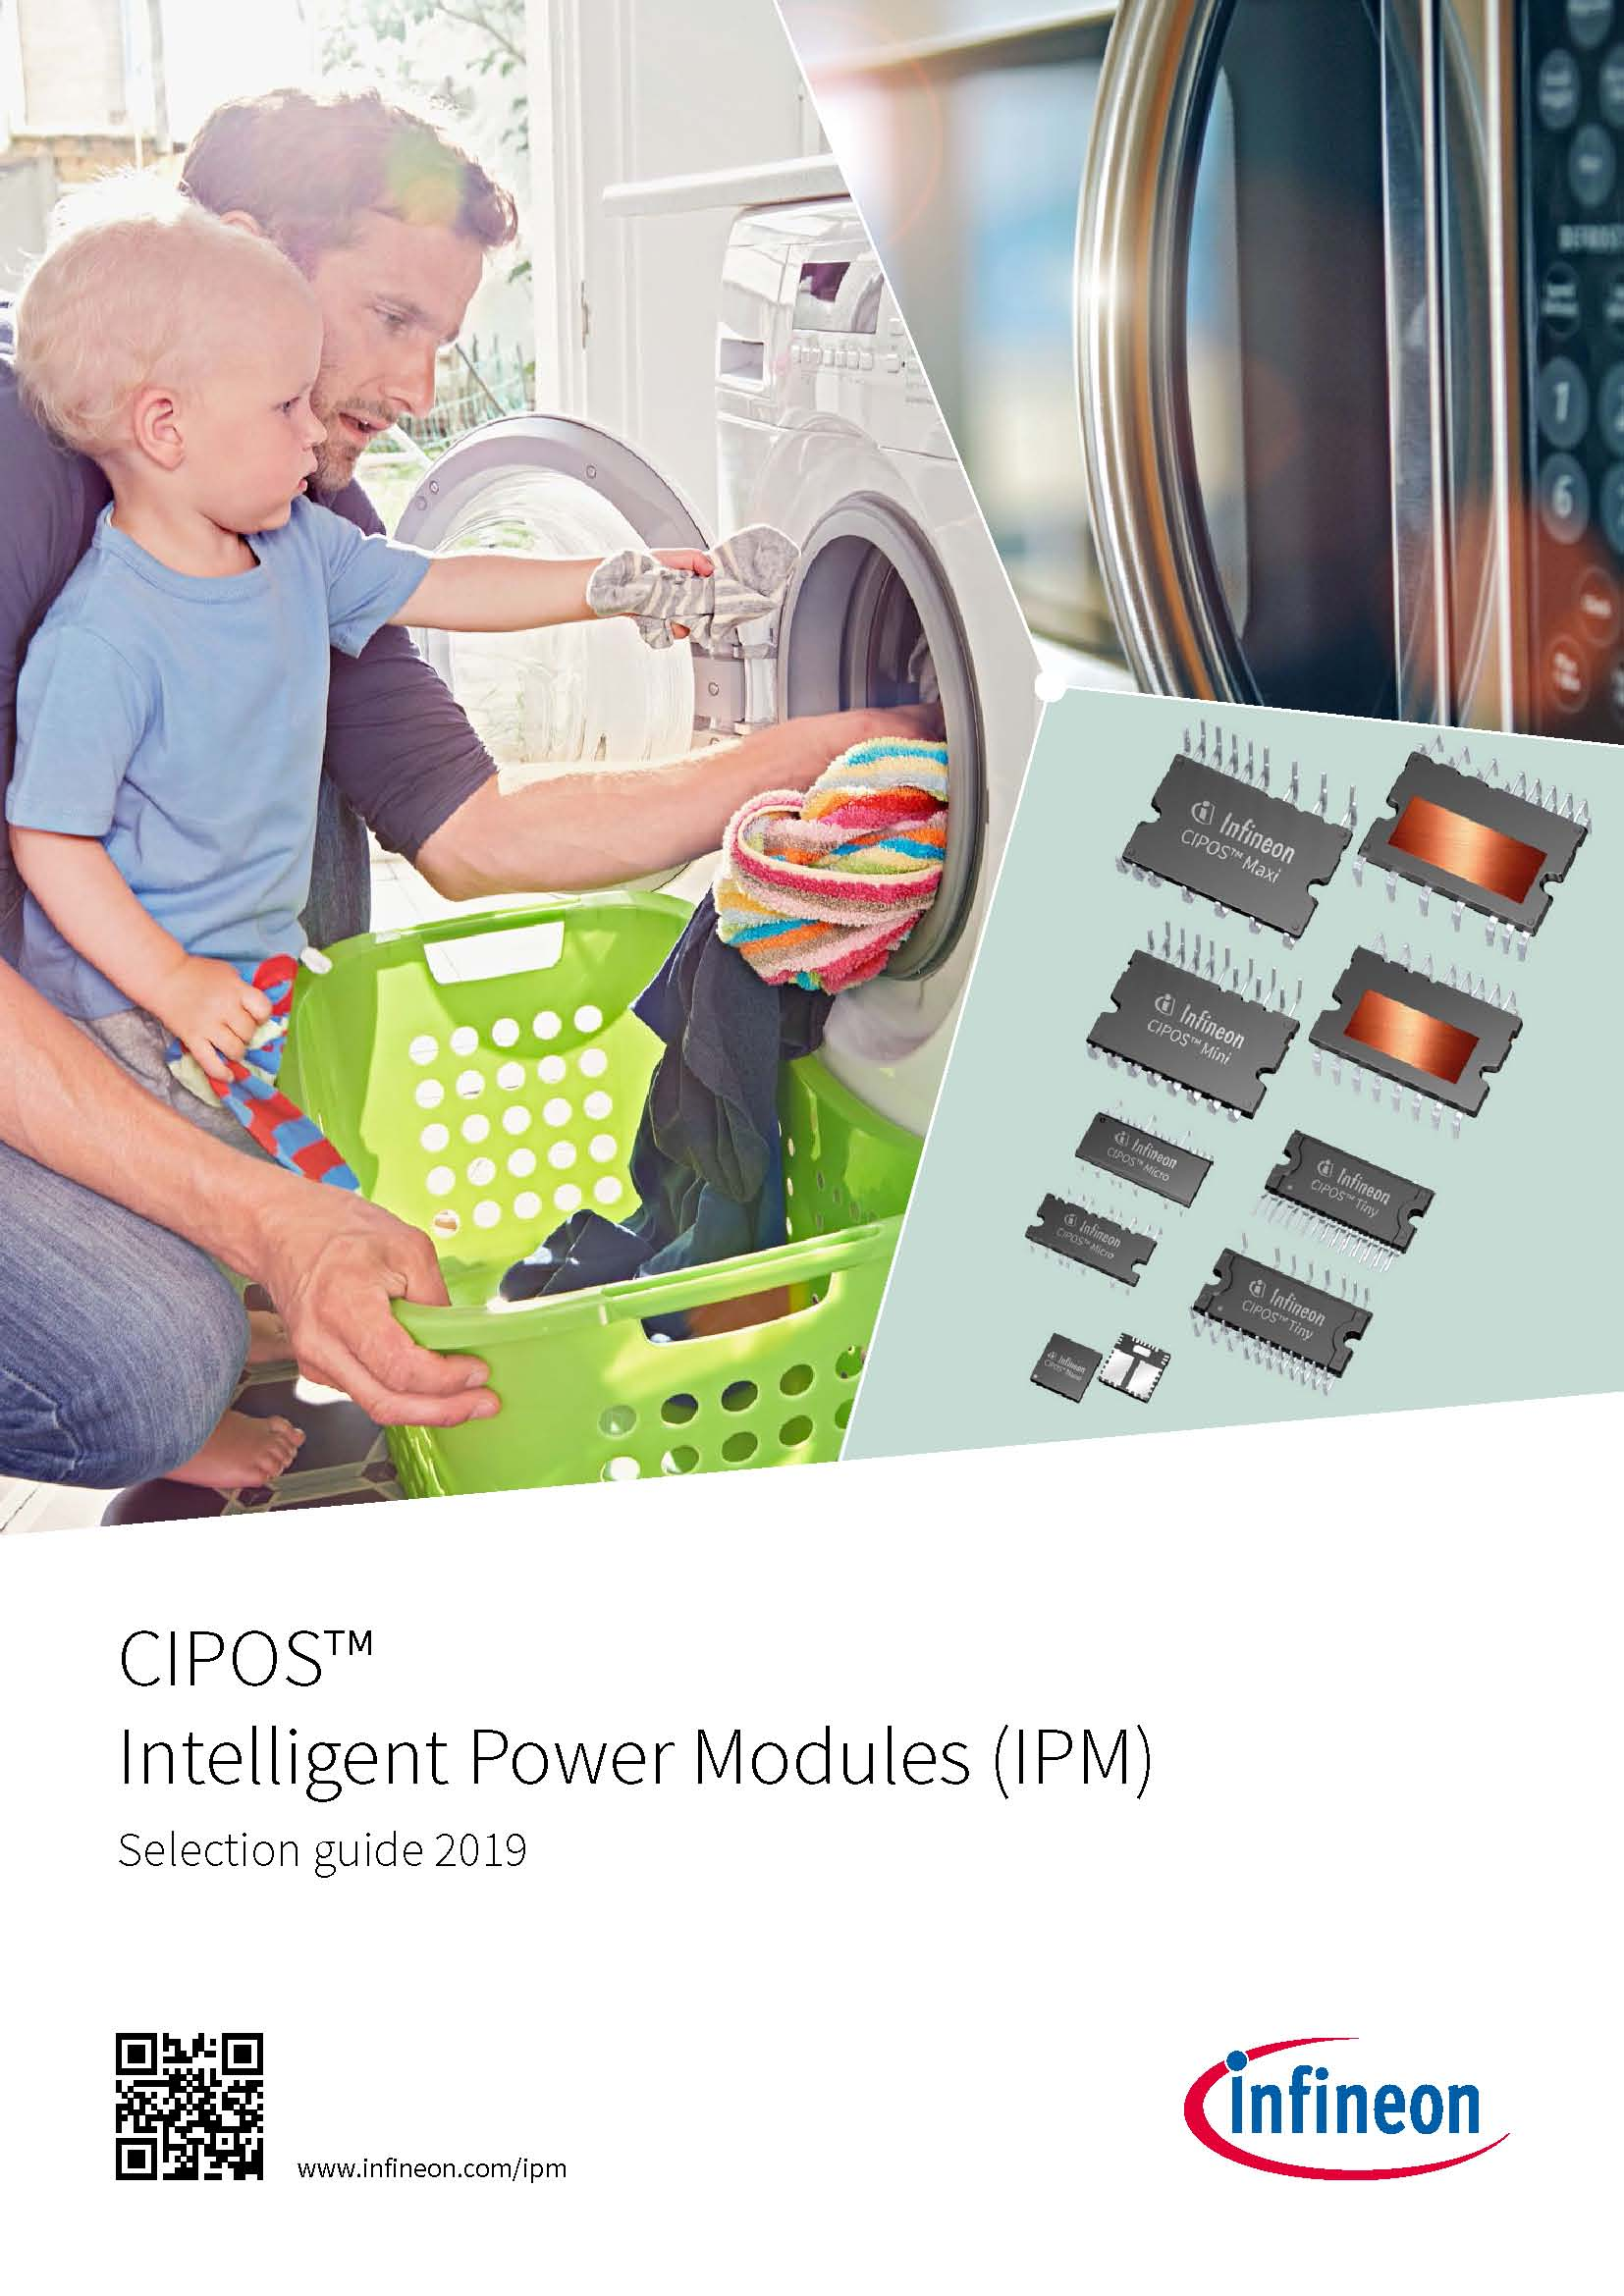 CIPOS™ Intelligent Power Modules (IPM)